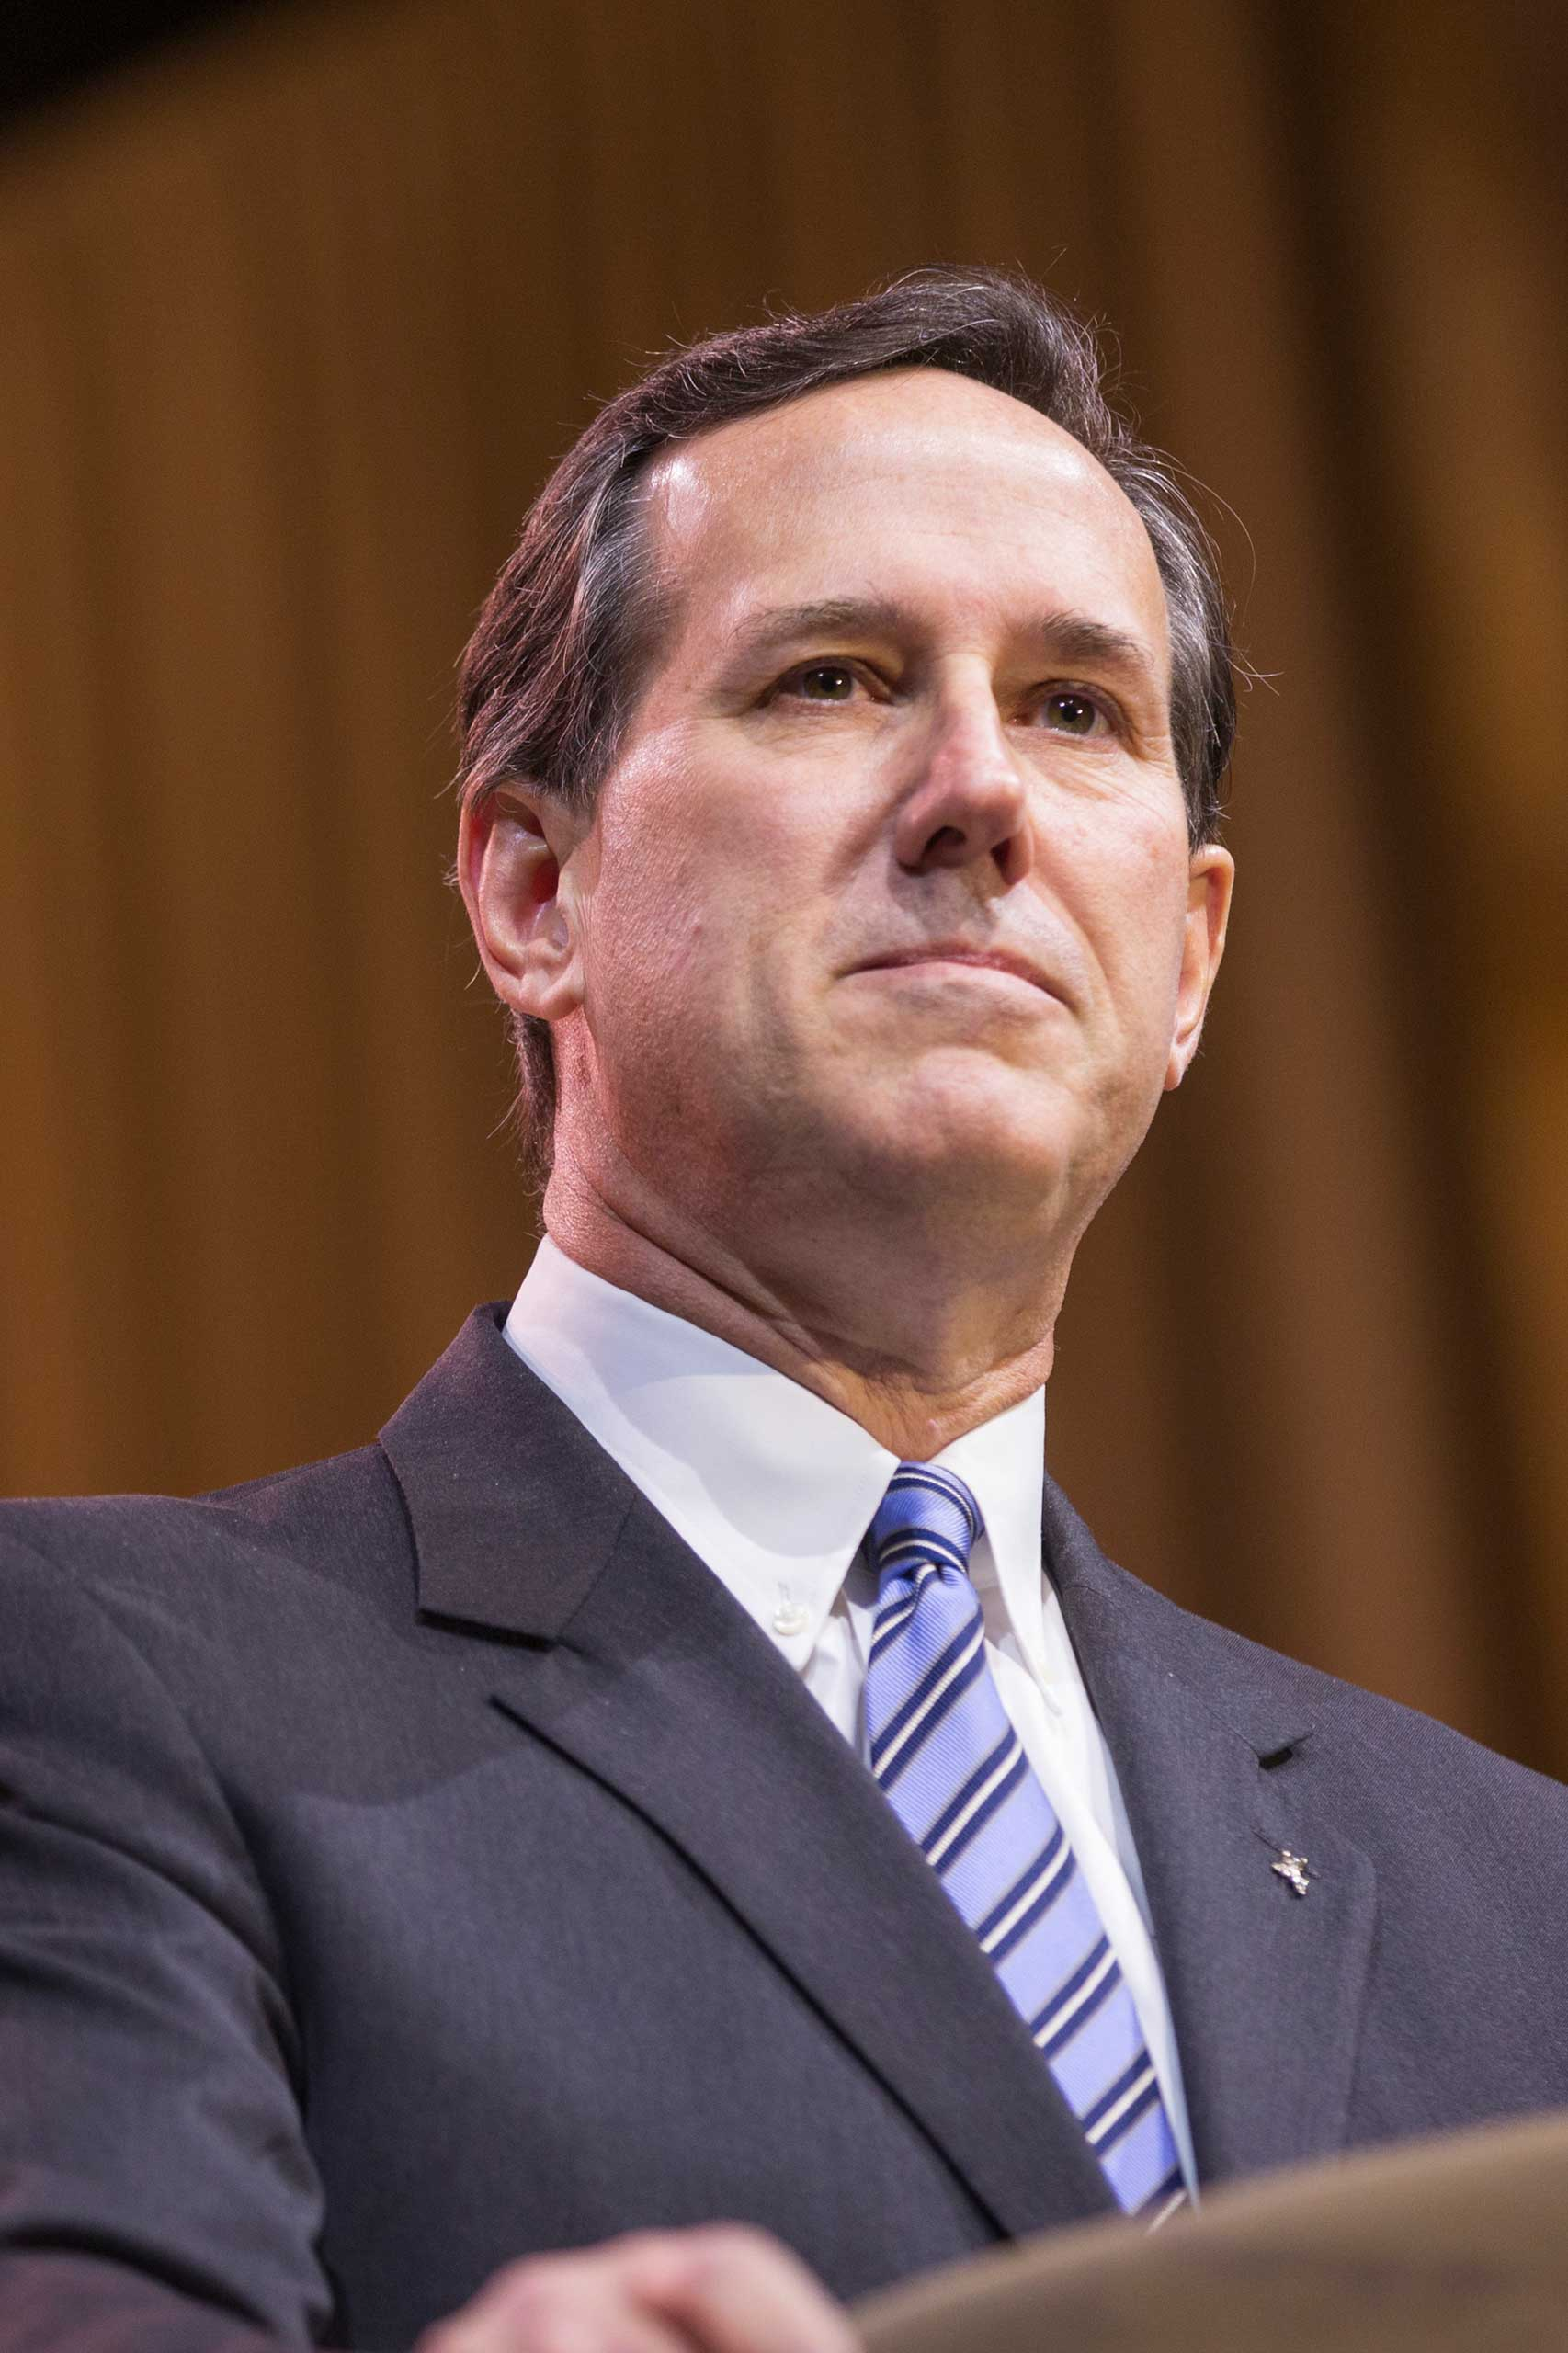 <b>Rick Santorum</b> Former Pennsylvania Senator Rick Santorum looks resolute at CPAC, the Conservative Political Action Conference on March 7, 2014.